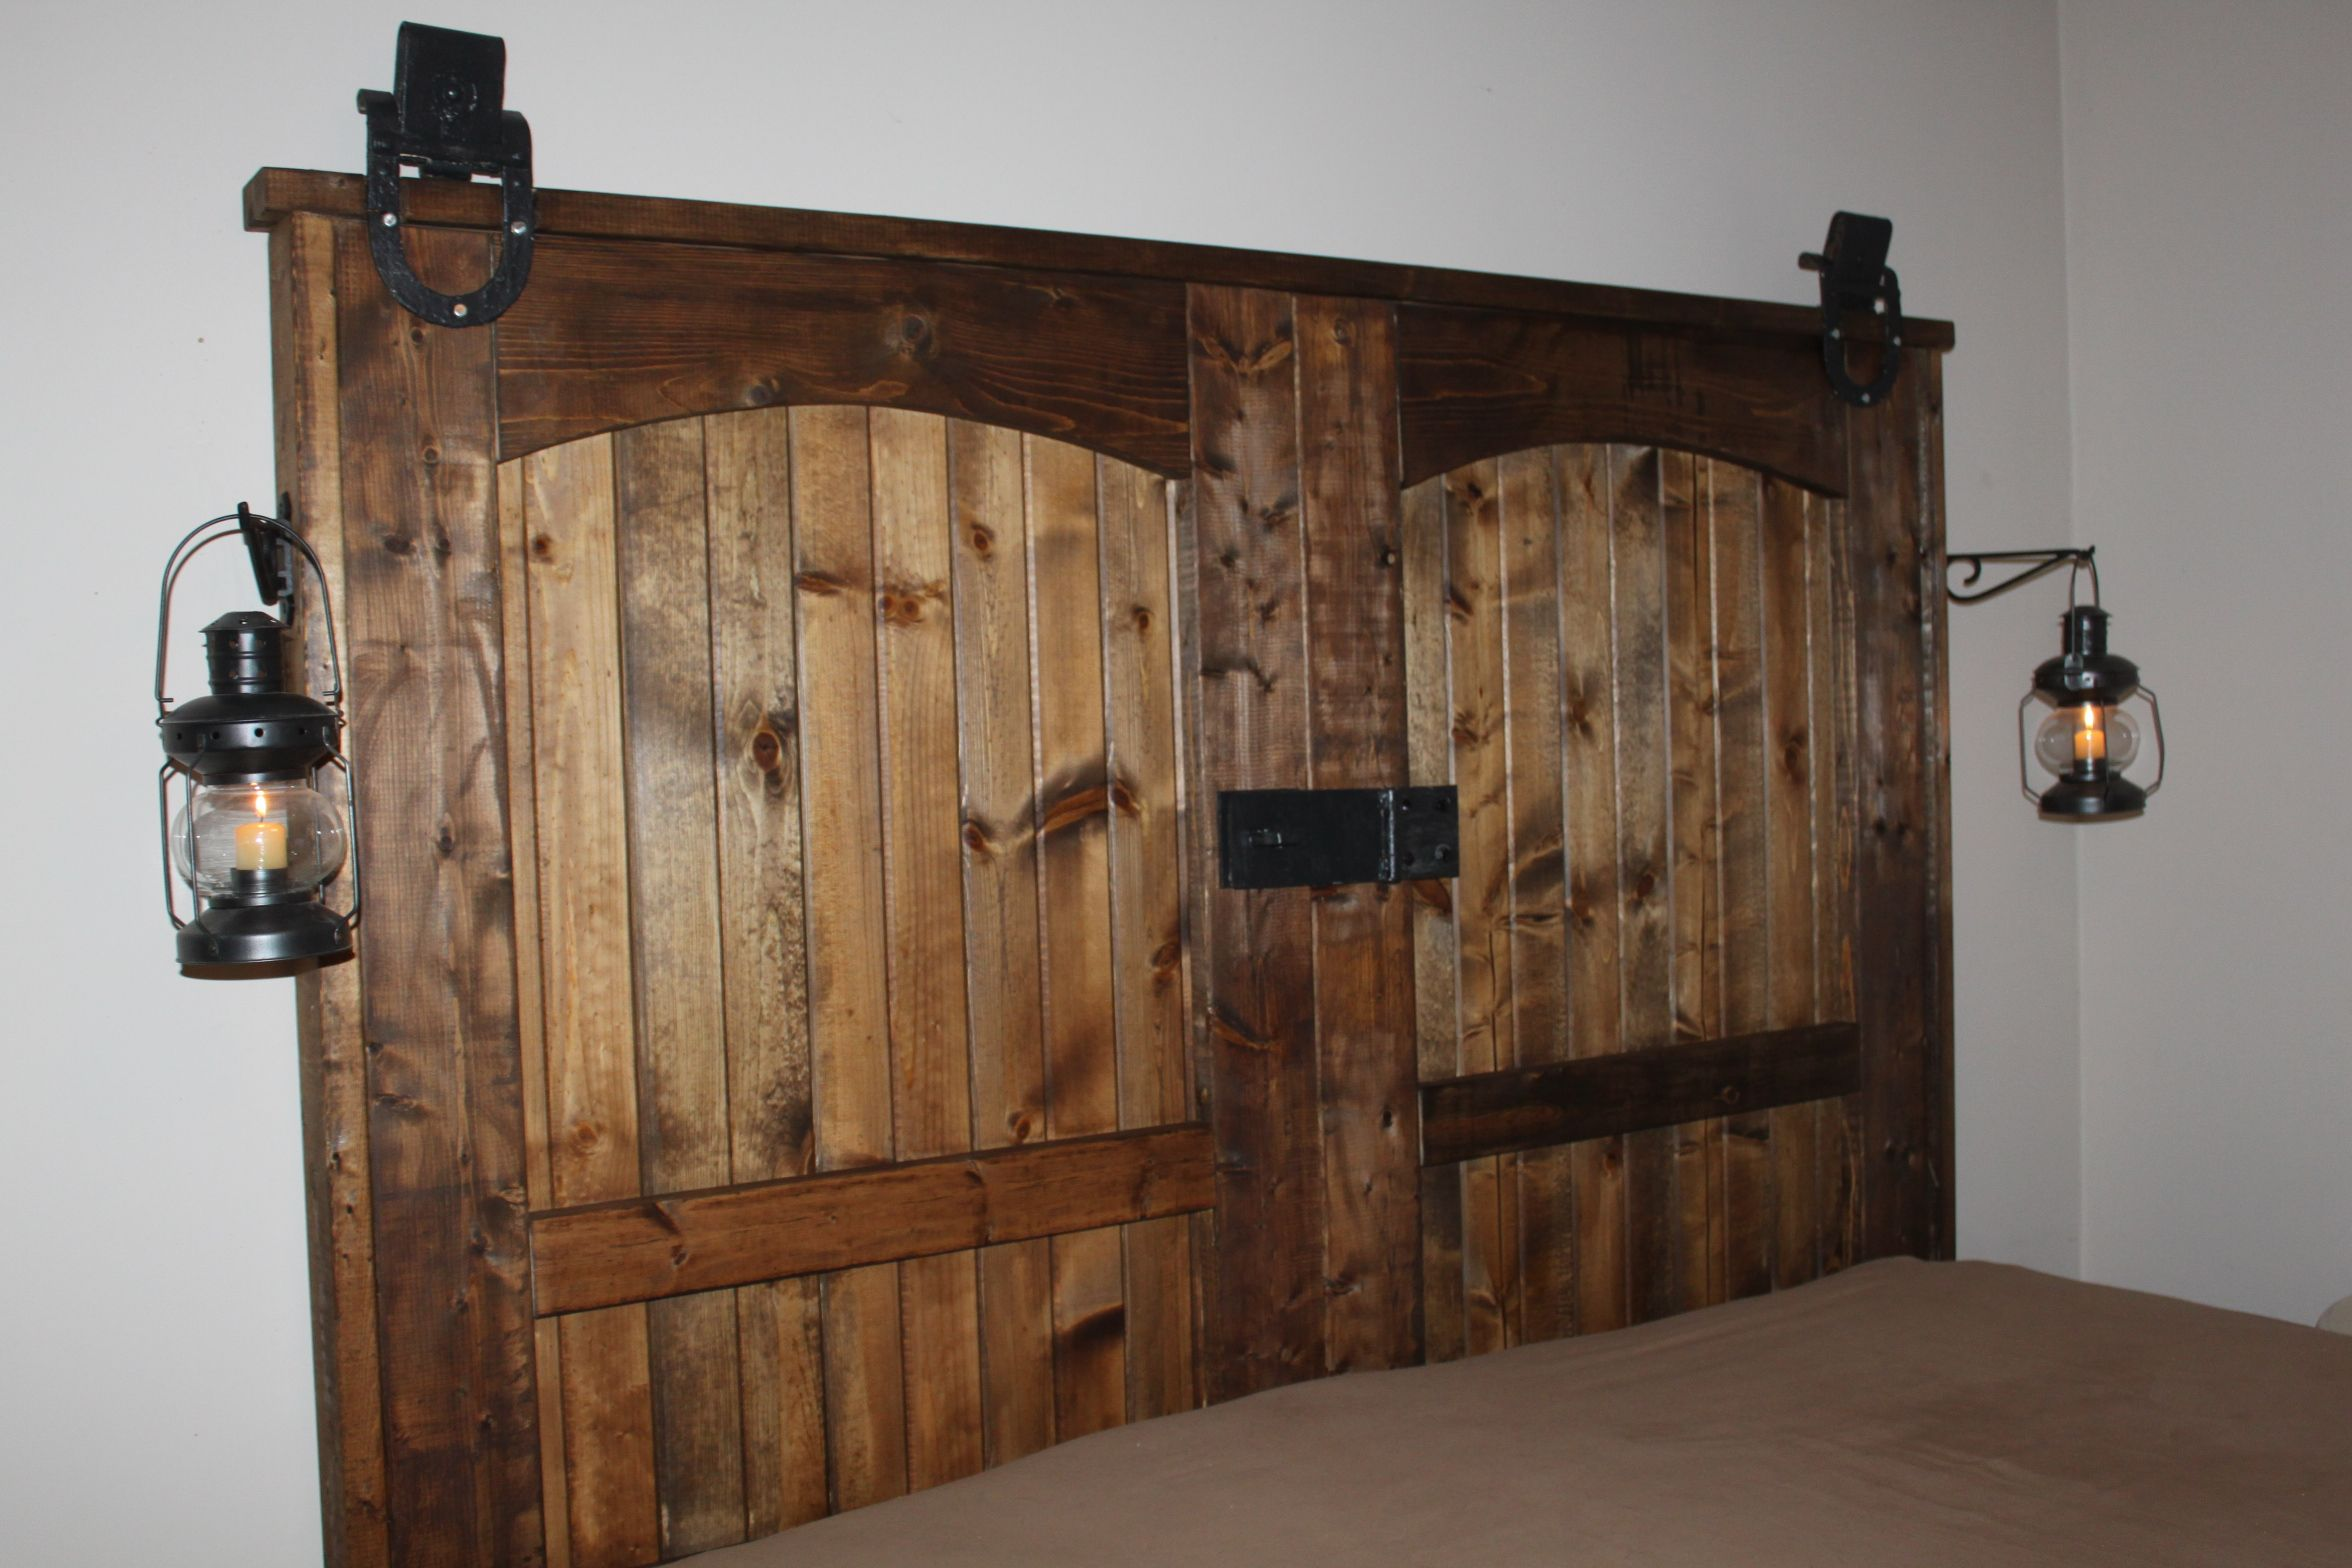 Use Old Barn Doors To Create Your Own Rustic Headboard Don T Be Afraid To Try A Few Scrap Yards For Treasu Old Barn Doors Barndoor Headboard Rustic Barn Door